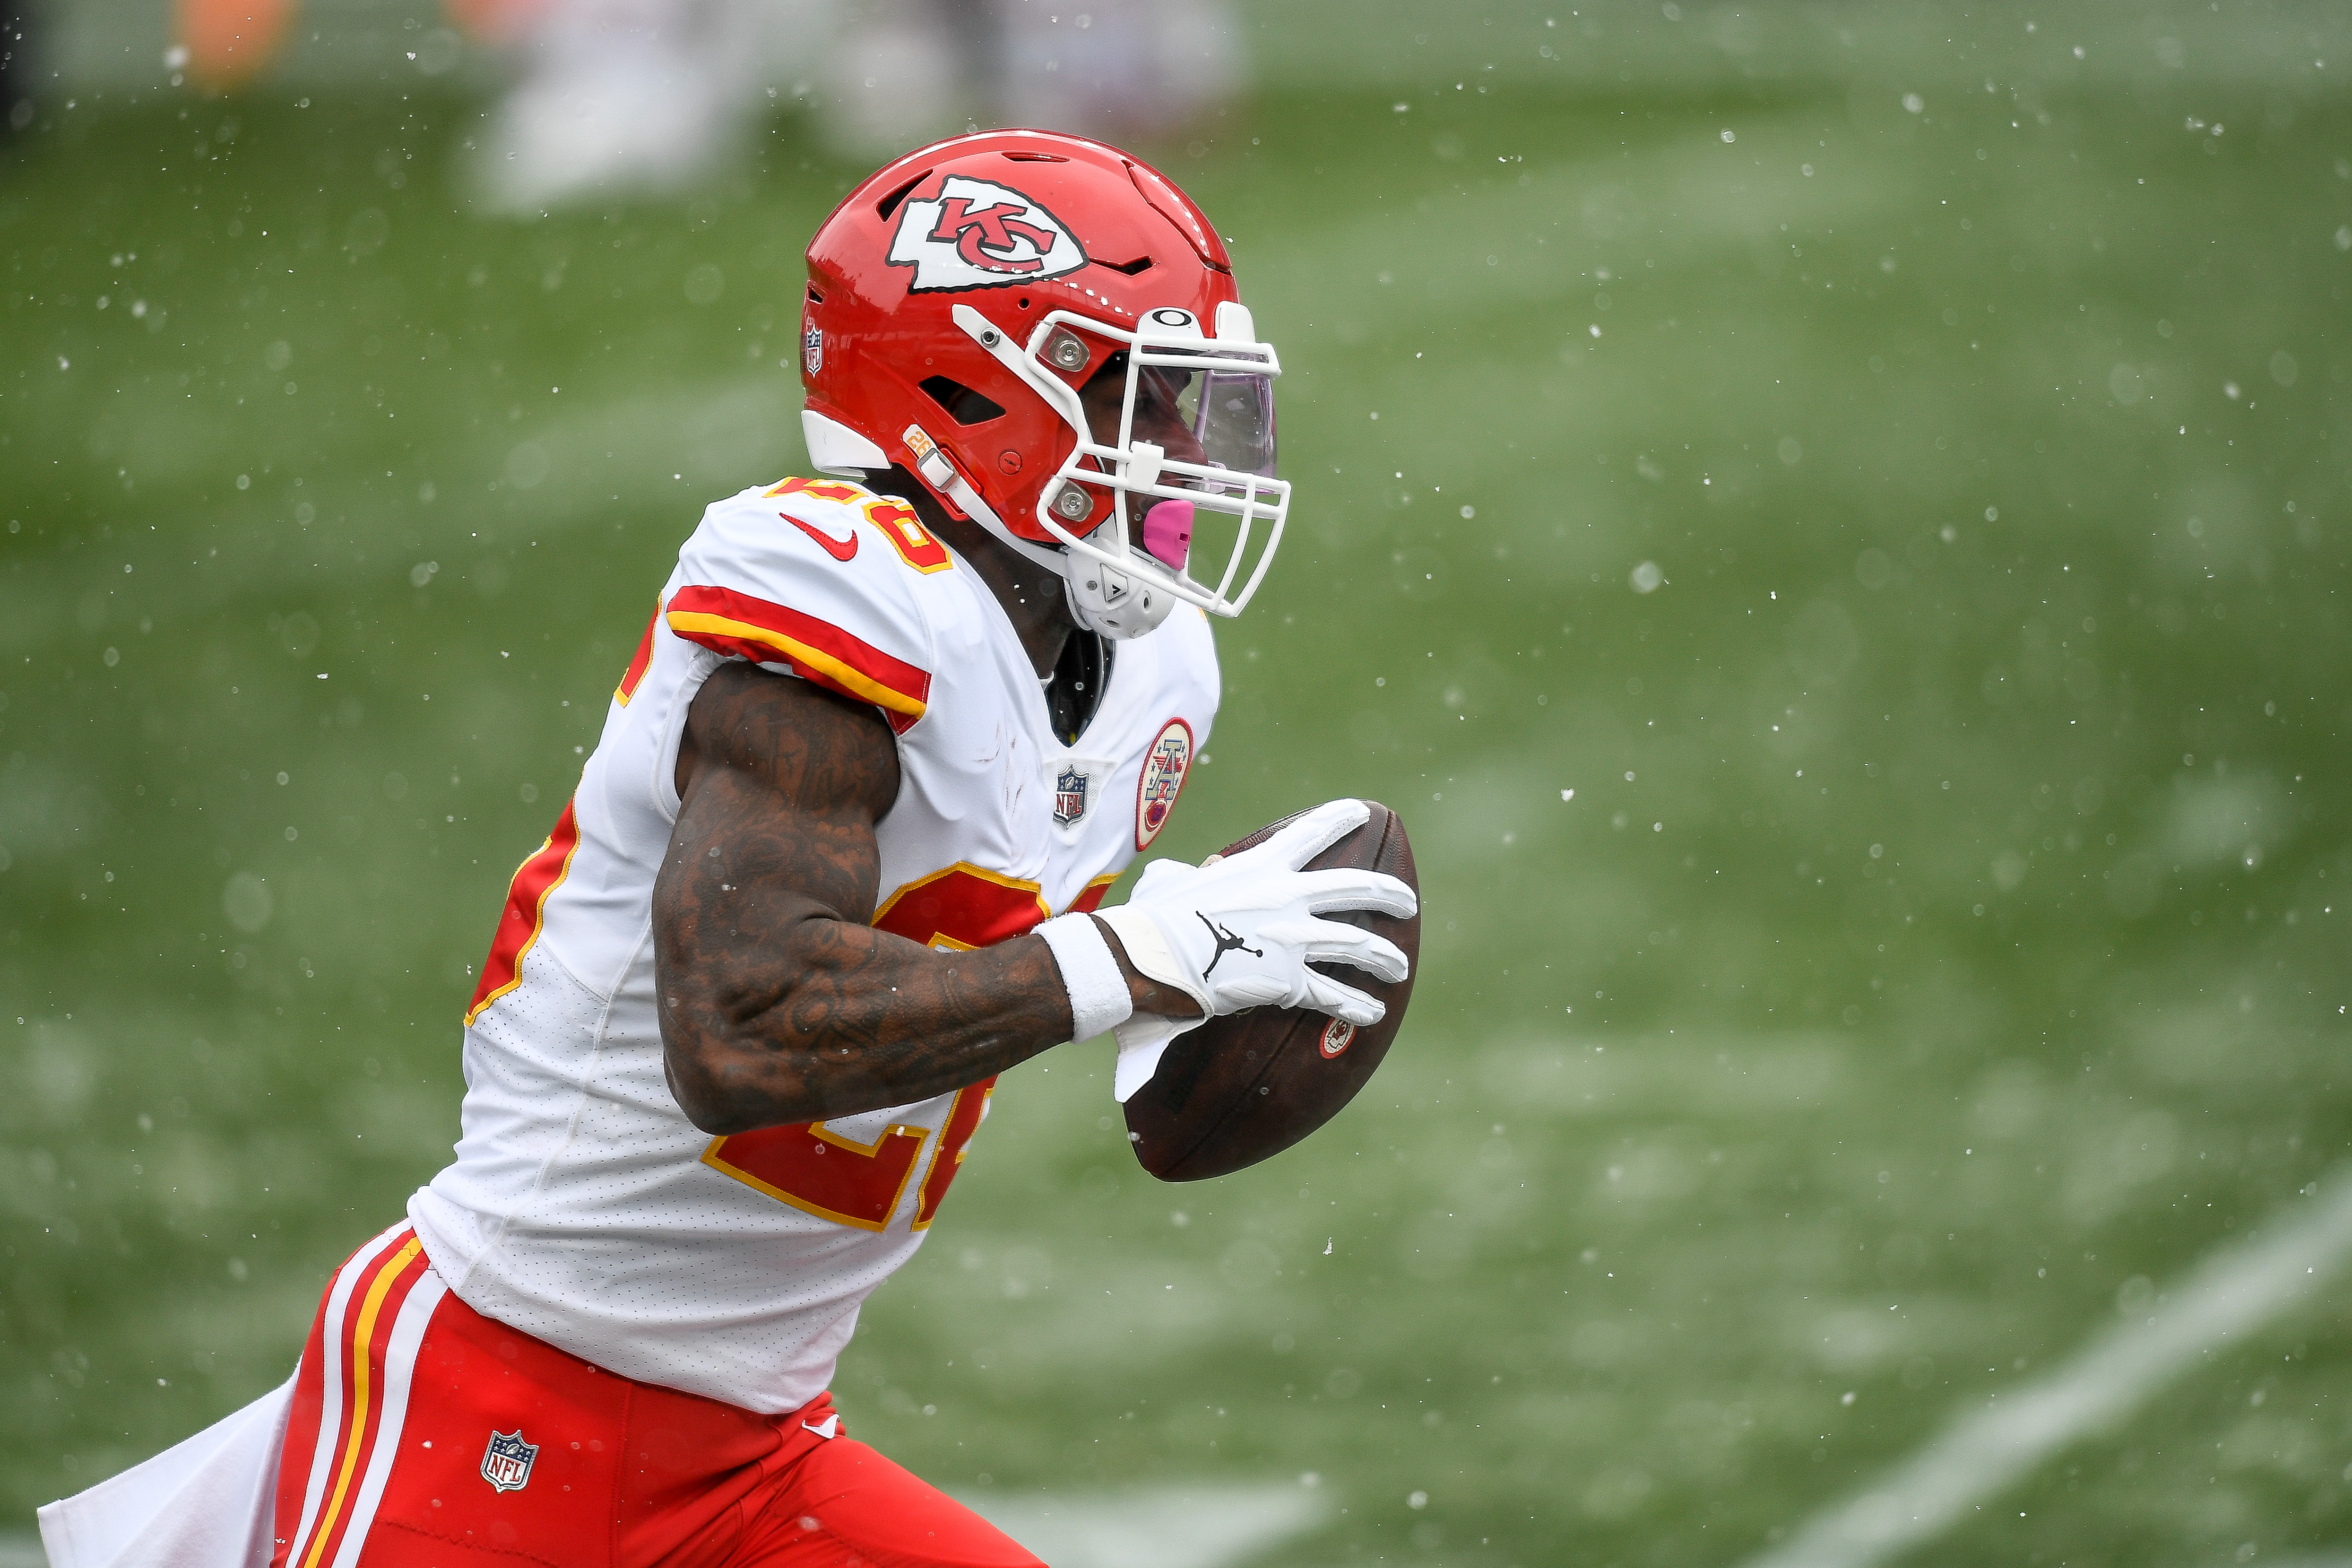 Le'Veon Bell #26 of the Kansas City Chiefs warms up before a game against the Denver Broncos at Empower Field at Mile High on October 25, 2020 in Denver, Colorado.